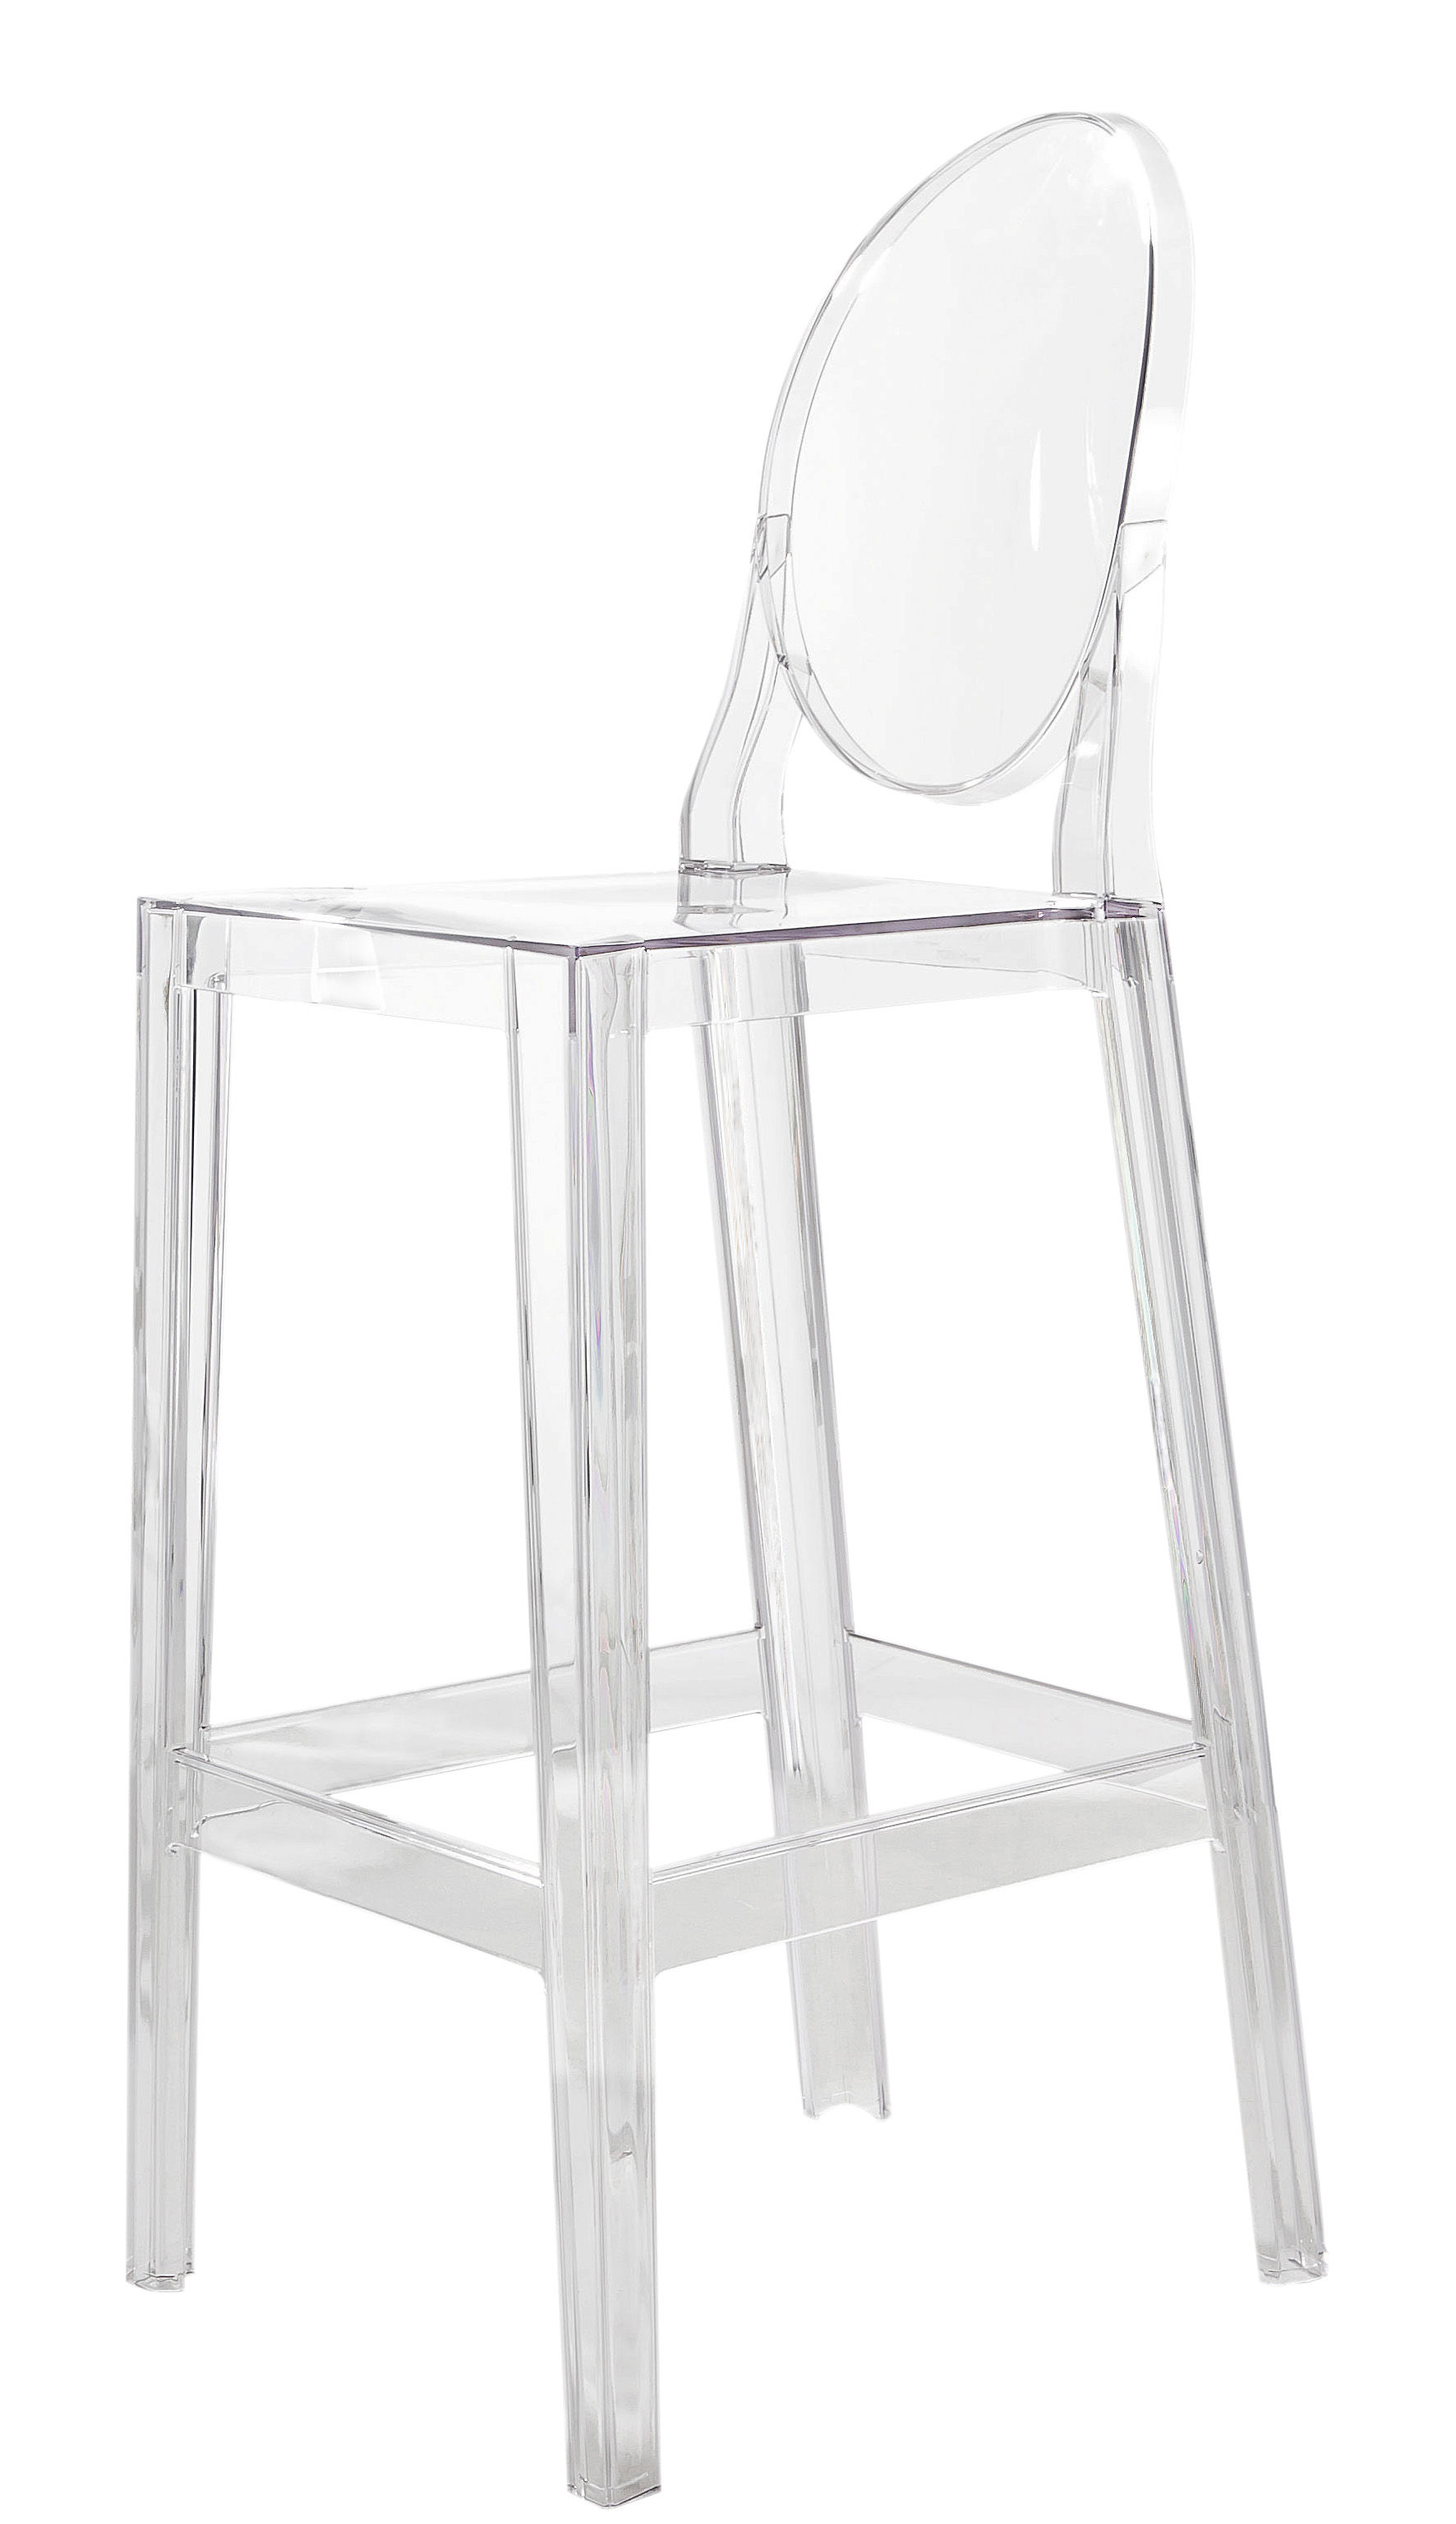 One More Bar Chair H 65cm Plastic Cristal By Kartell